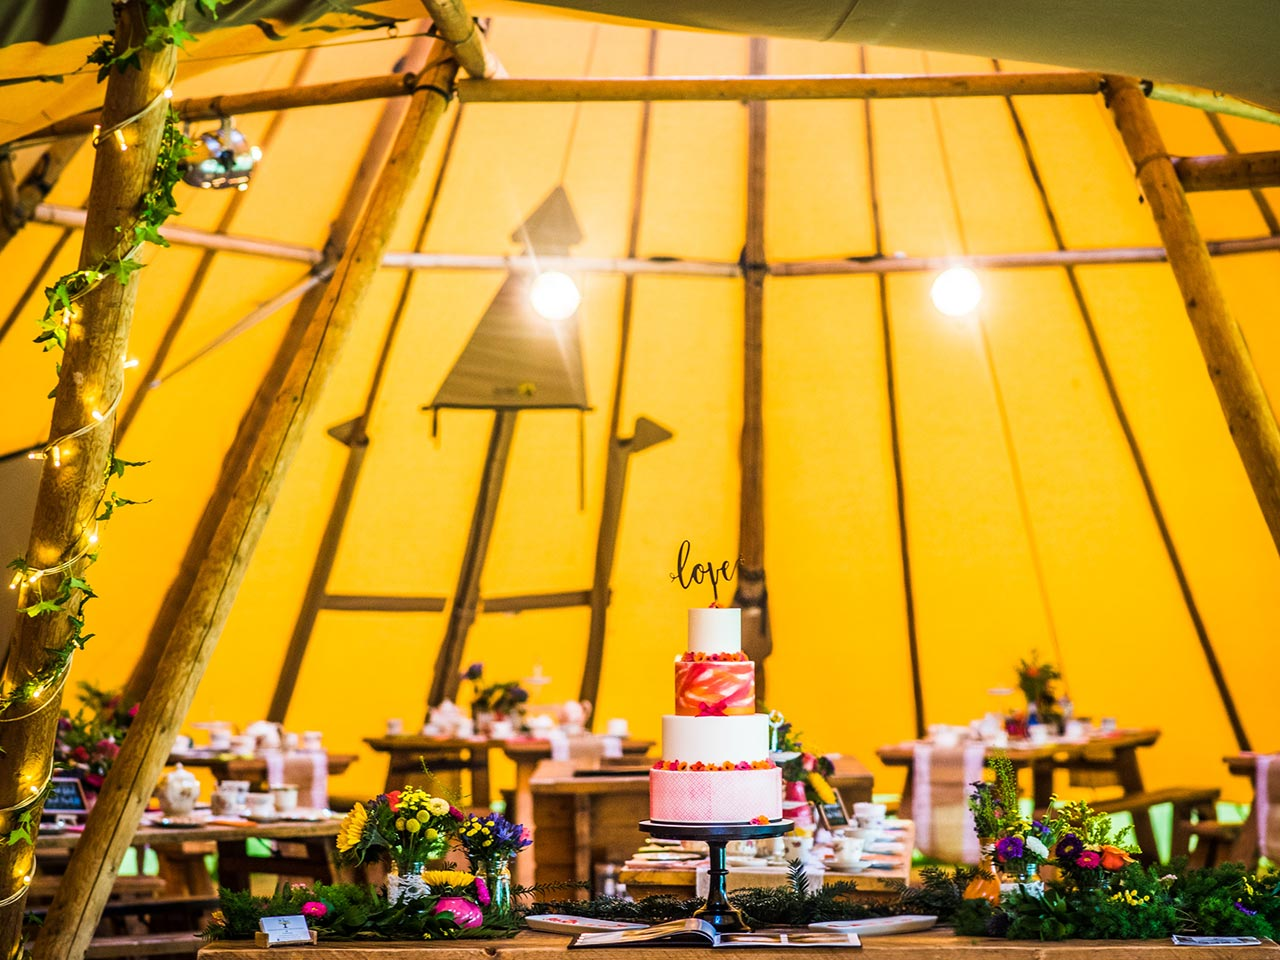 About Us - Magical Events in a Tipi